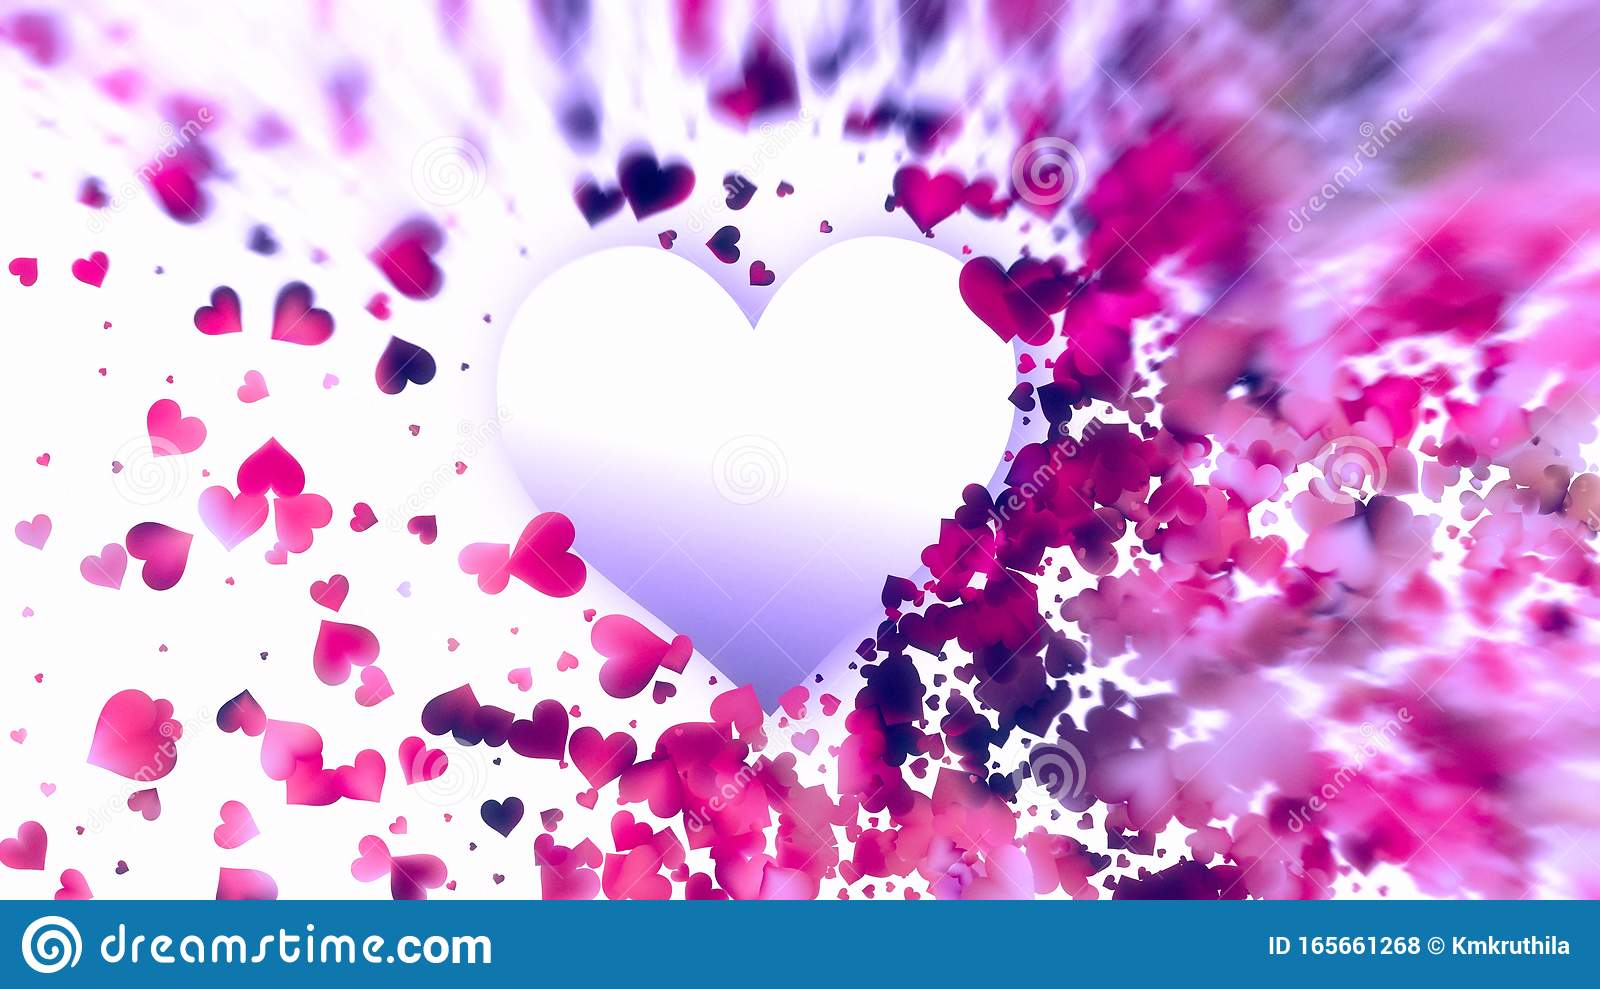 blurred pink purple white heart wallpaper background image blurred pink purple white heart wallpaper background image 165661268